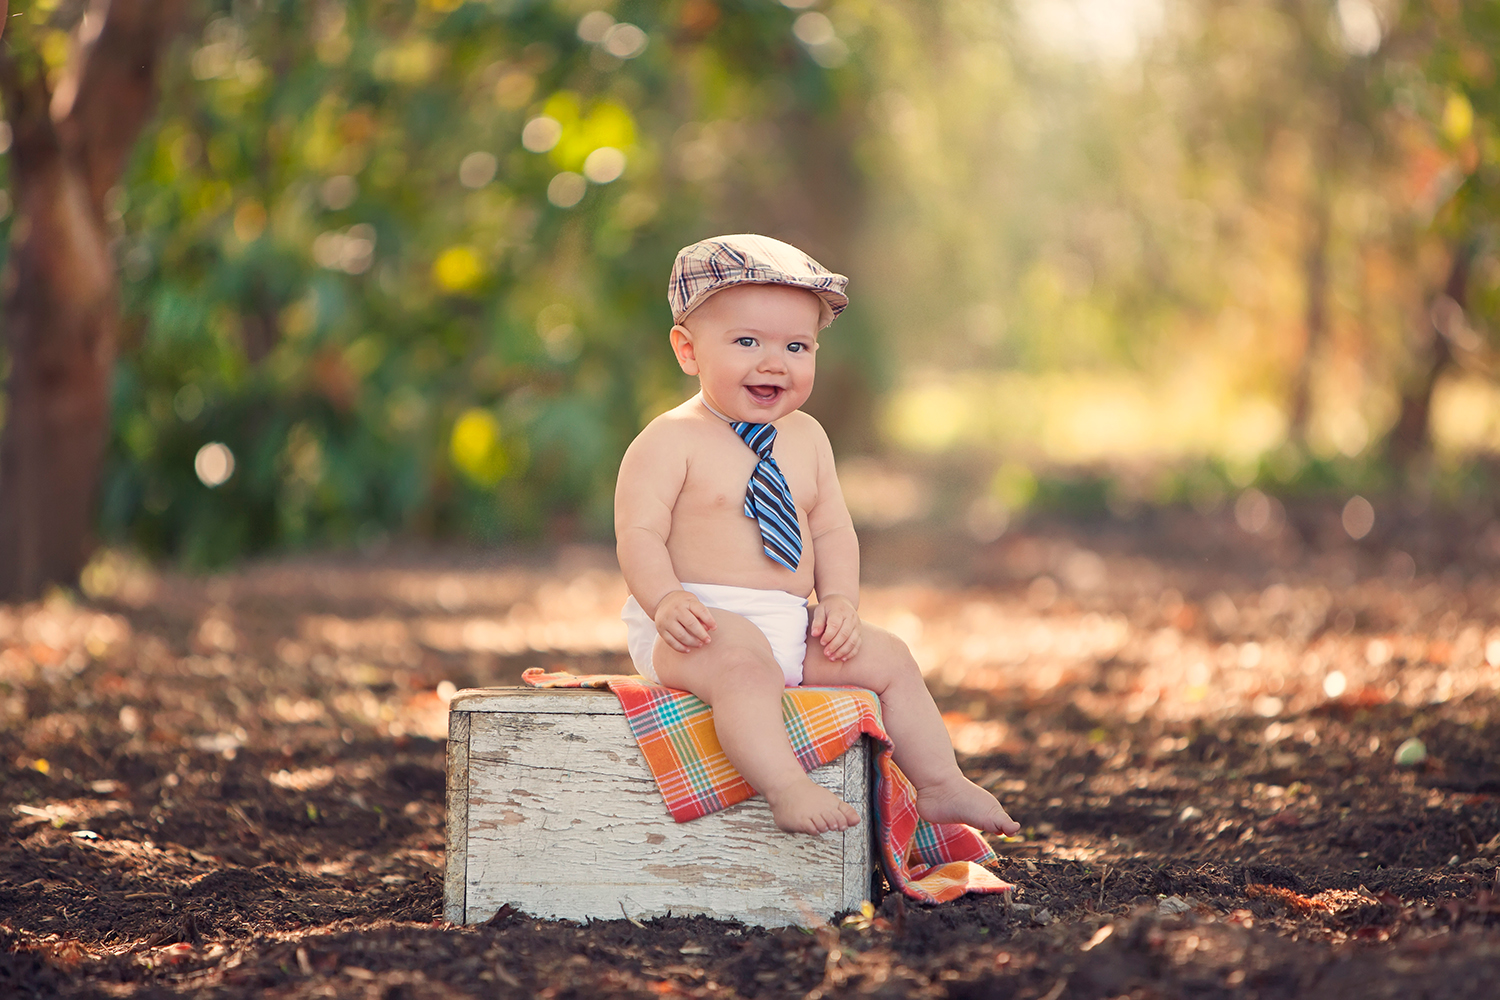 Dena_Rooney_baby photographer_0008.jpg